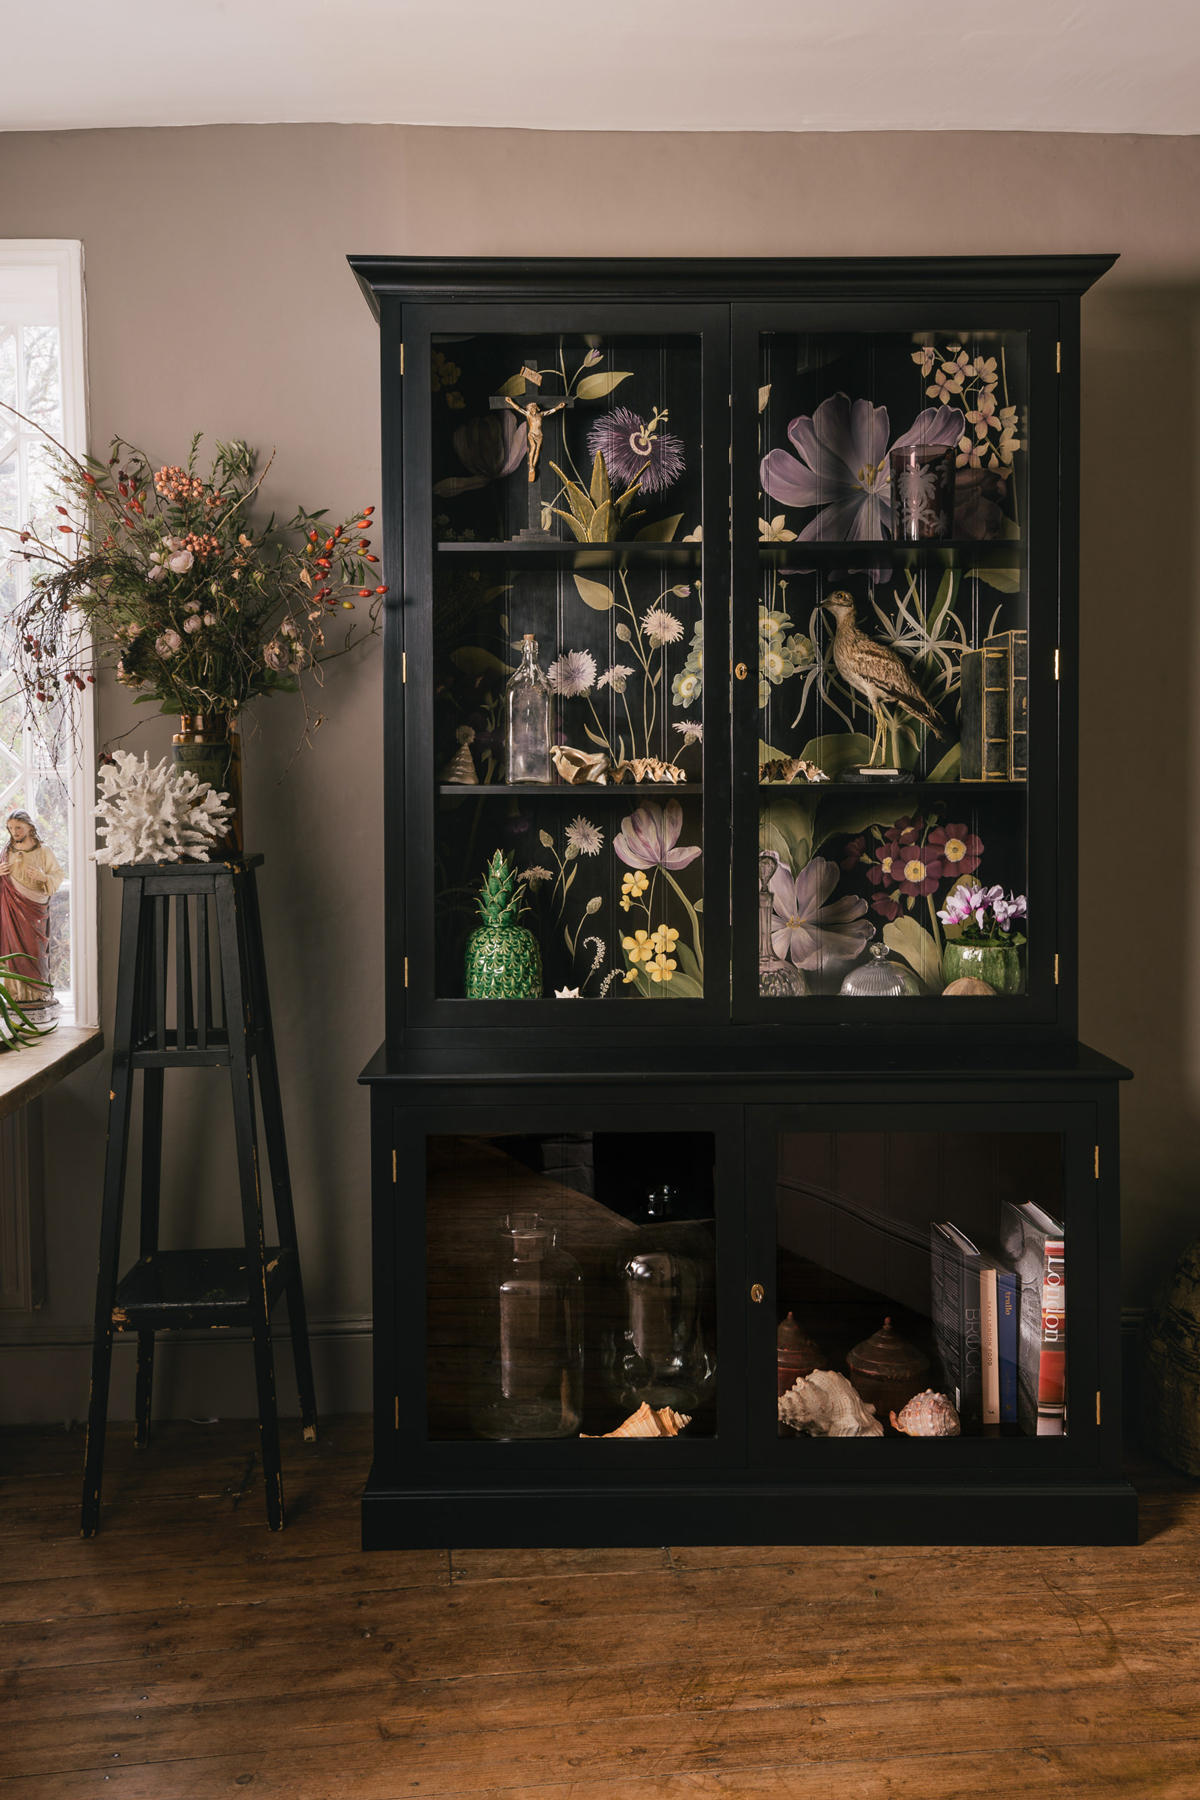 marvellous industrial chic kitchen | BLOOMING MARVELLOUS: Devol's CHIC CHINOISERIE FOR YOUR ...